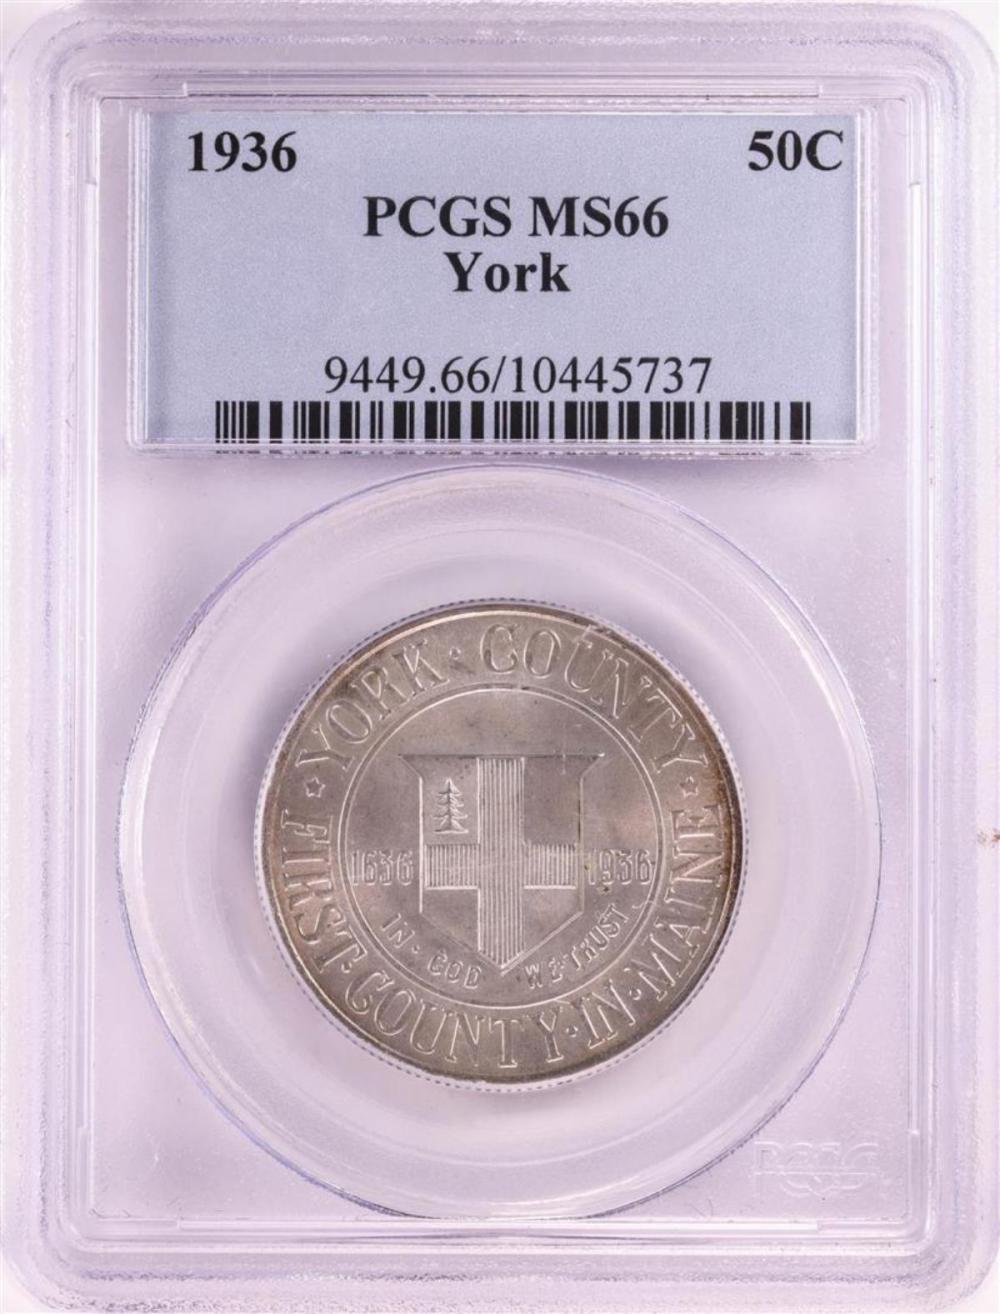 1936 York County Commemorative Half Dollar Coin PCGS MS66